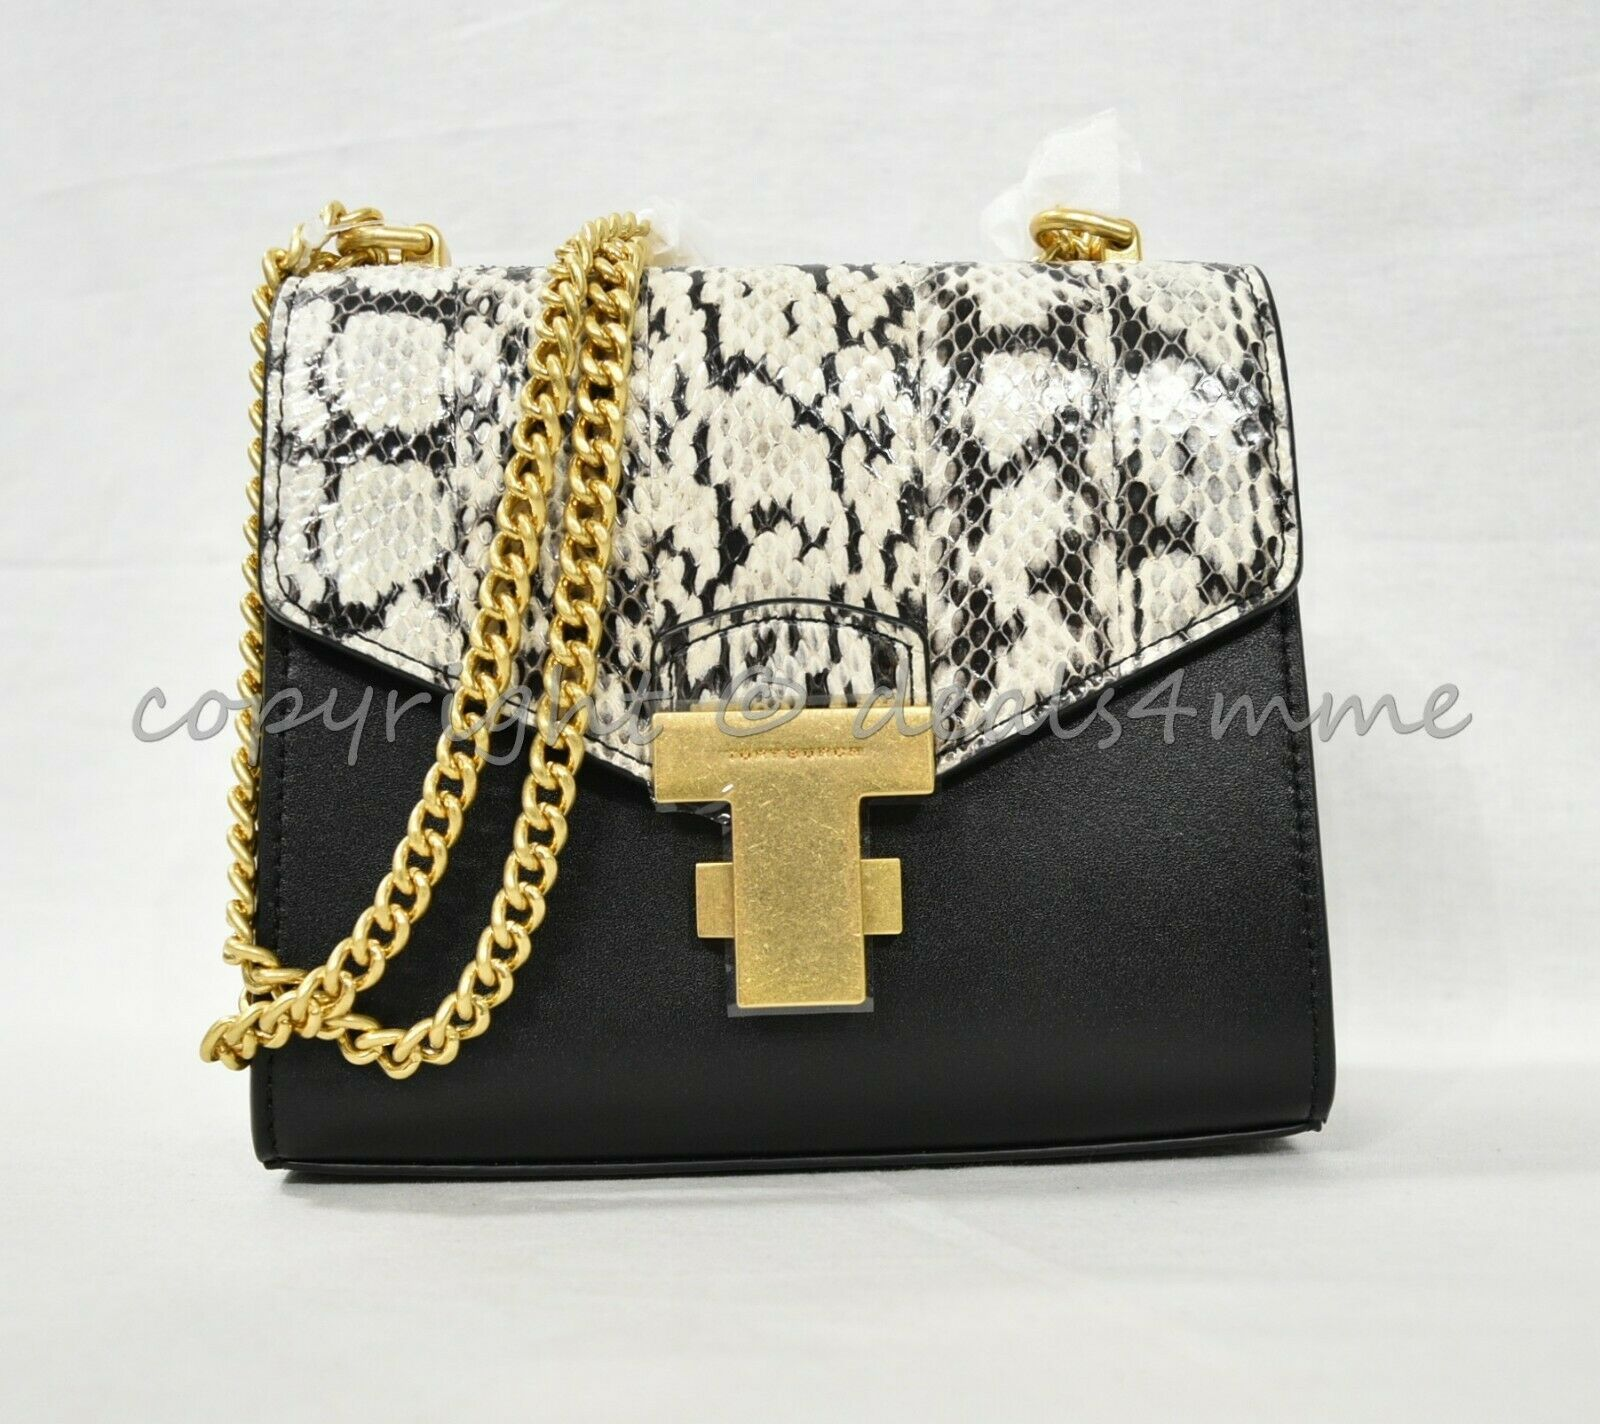 Tory Burch Juliette Snake Chain Leather Mini Bag Shoulder/Crossbody BlackNatural